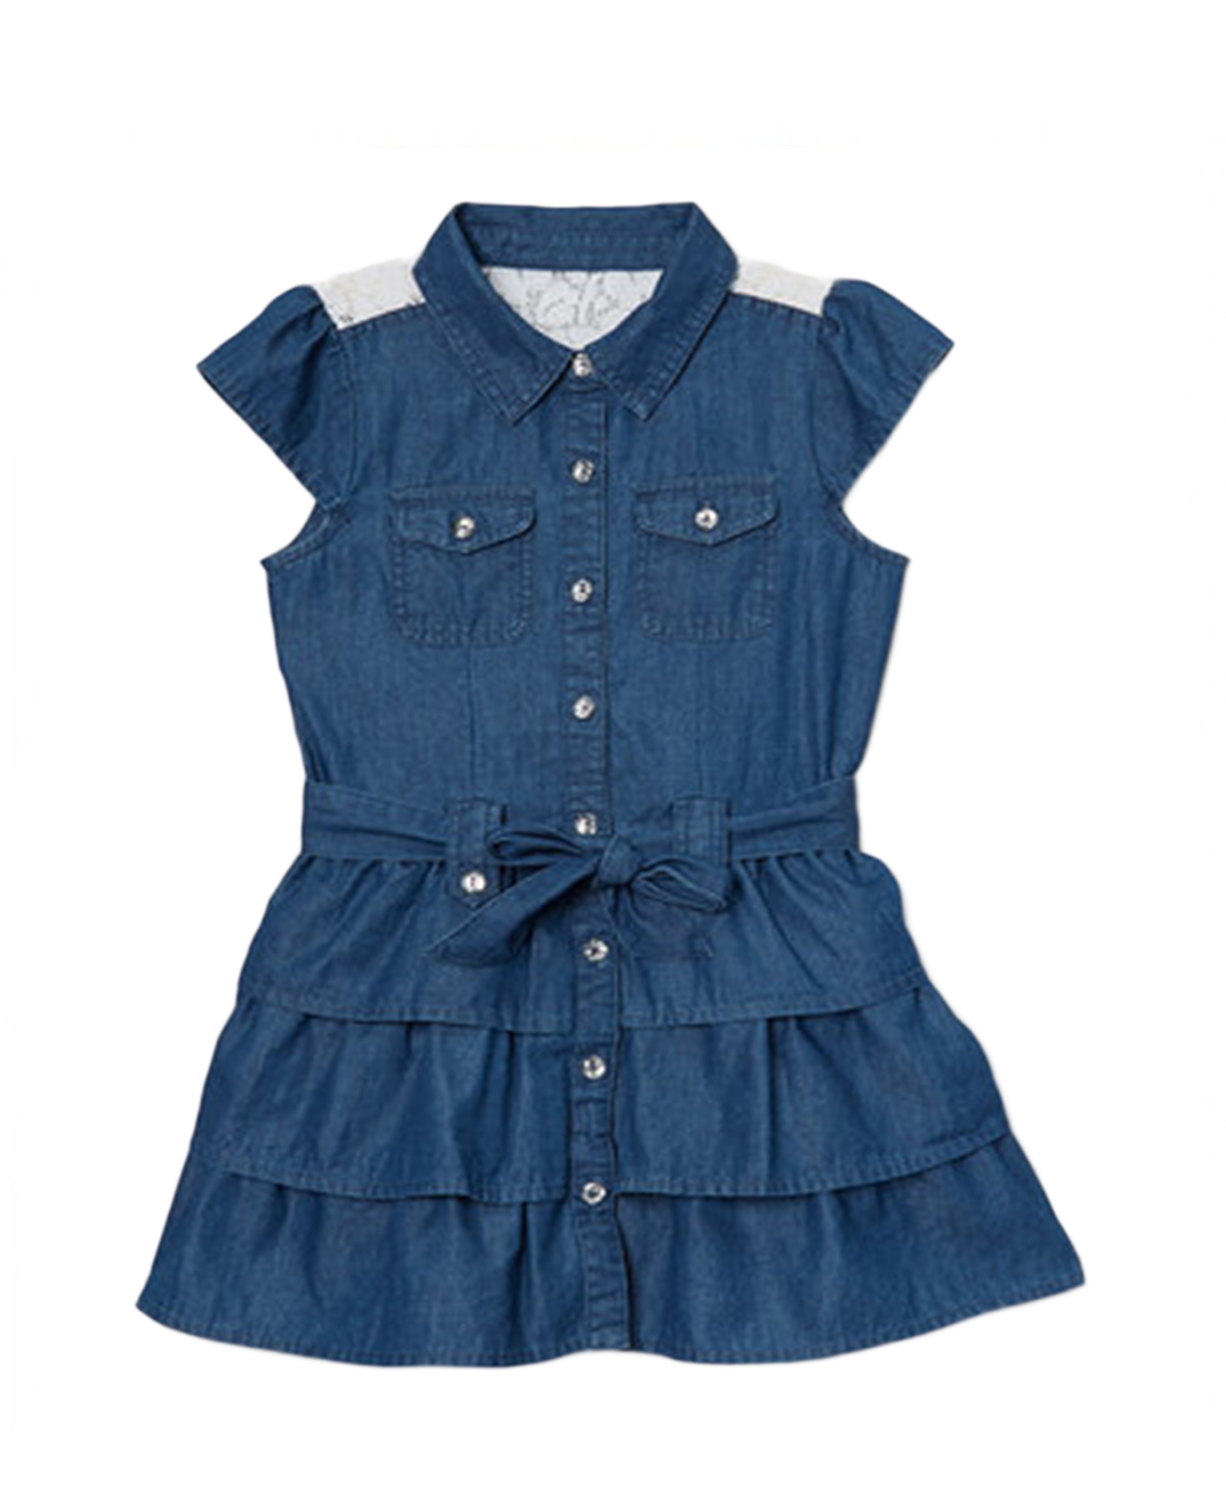 Find great deals on eBay for baby girl denim dress. Shop with confidence.